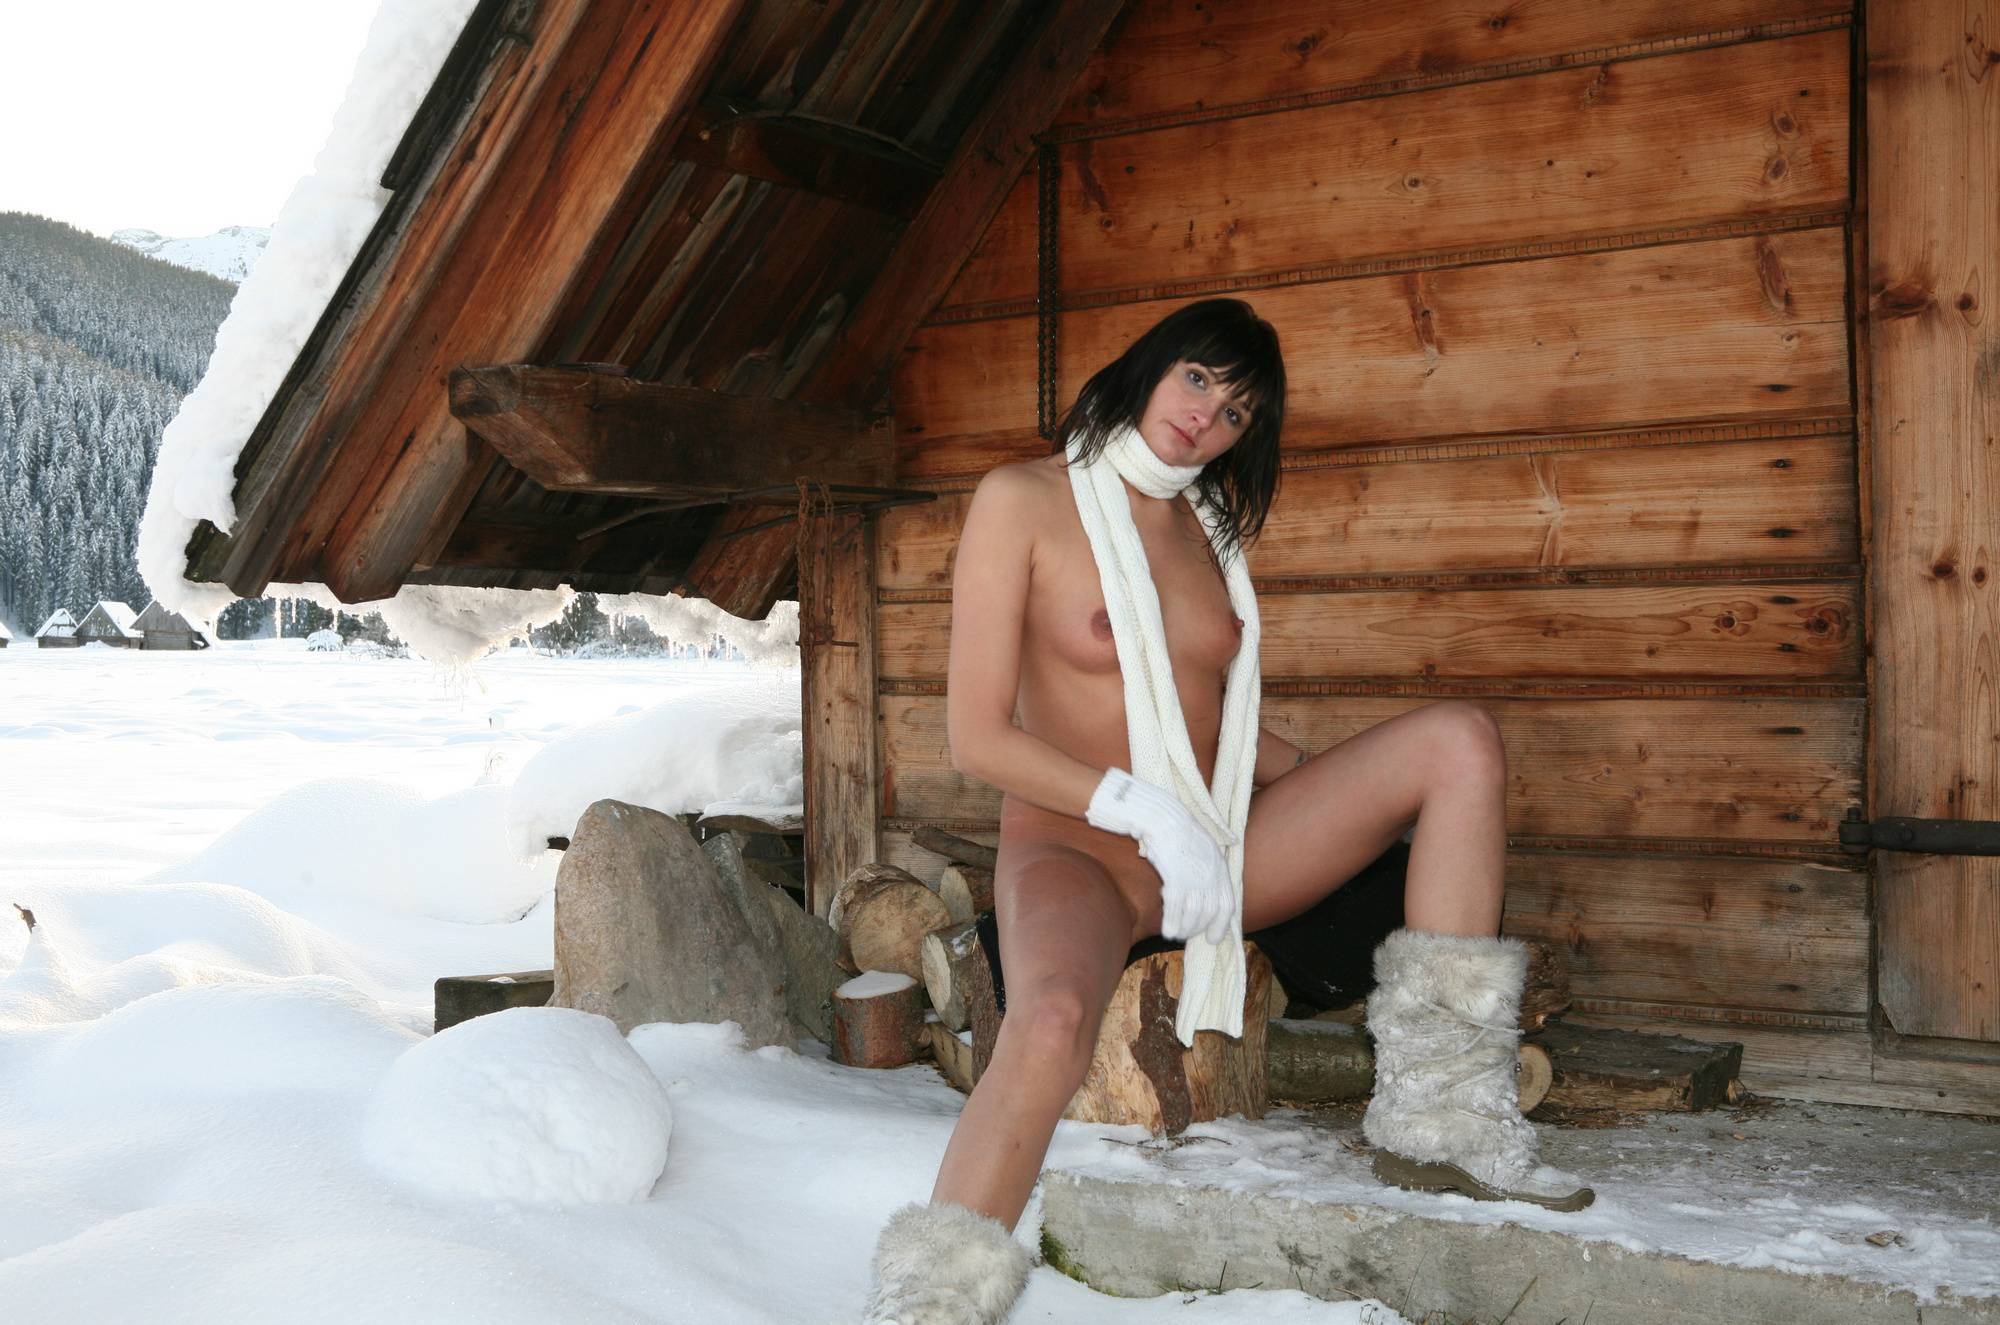 Nudist Pictures Snow Day Girl's Cabin - 1